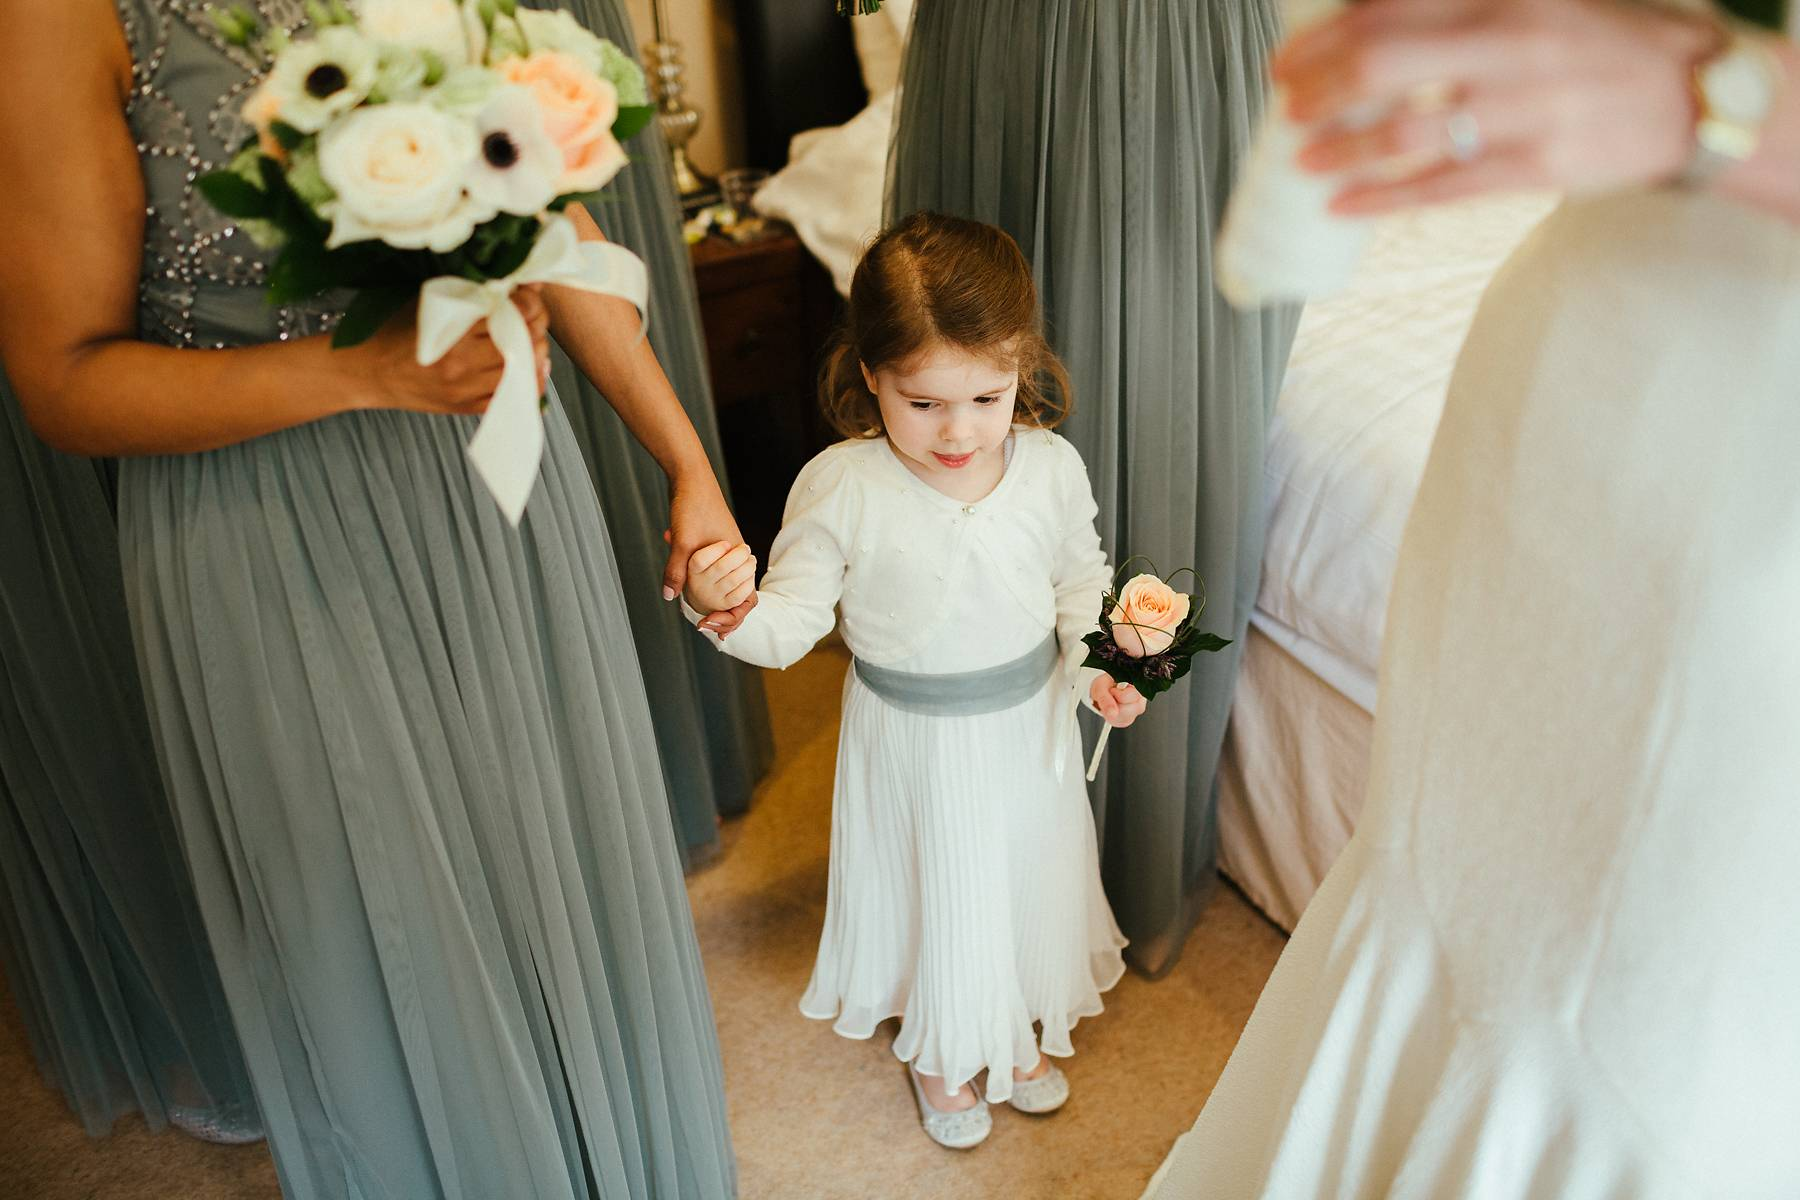 Hold hands with a nervous flower girl